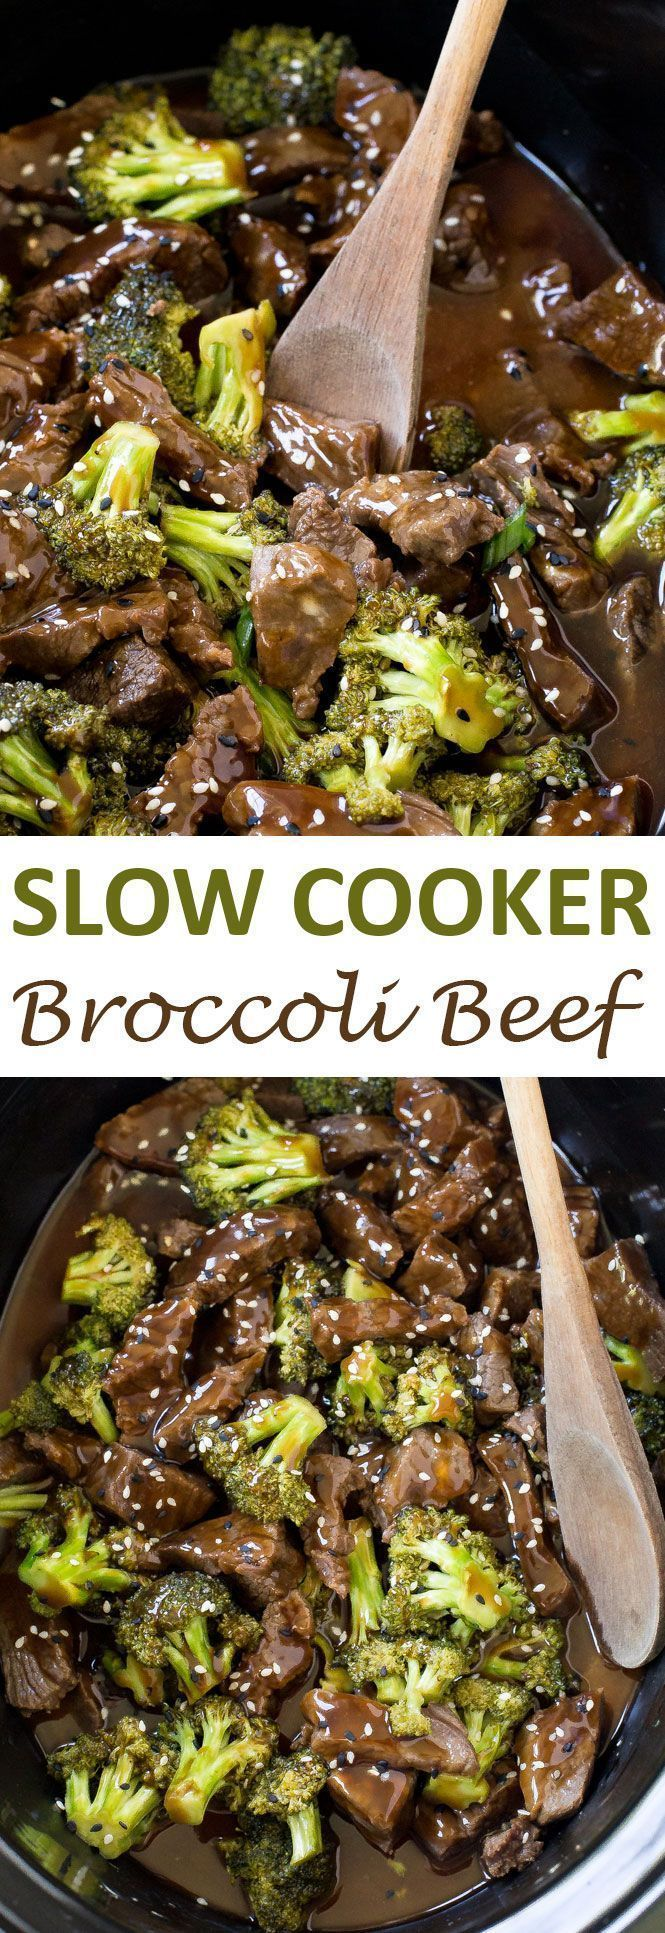 Slow Cooker Broccoli Beef. Super tender steak cooked low and slow for 5 hours!